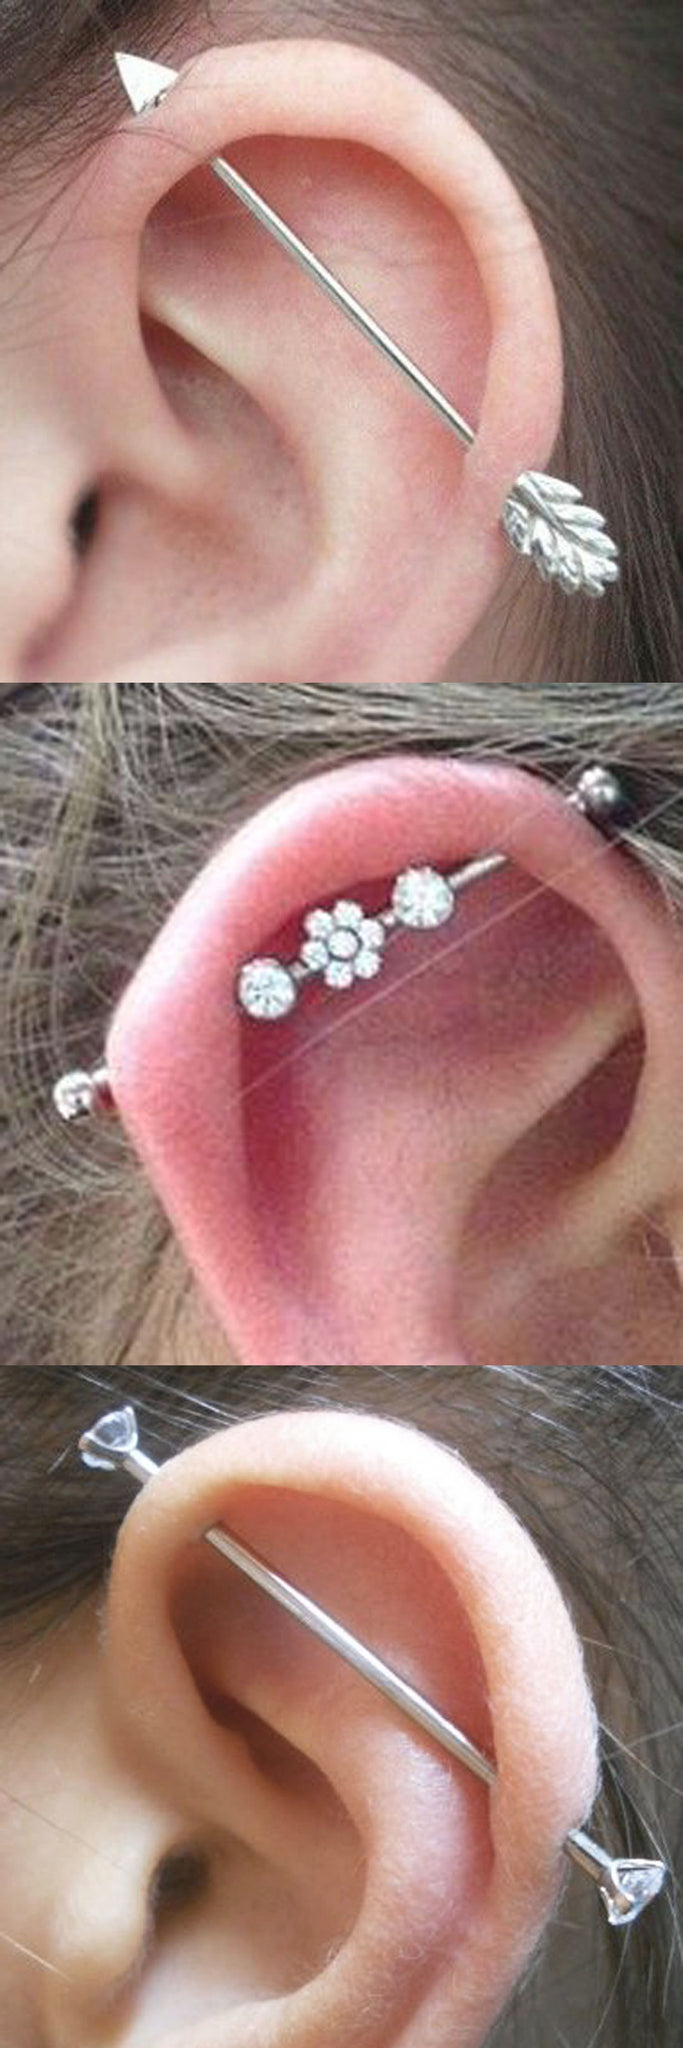 Upper Ear Piercing Ideas for Girls - Second Hole All the Way Up - Industrial Piercing Jewelry 14G at MyBodiArt.com